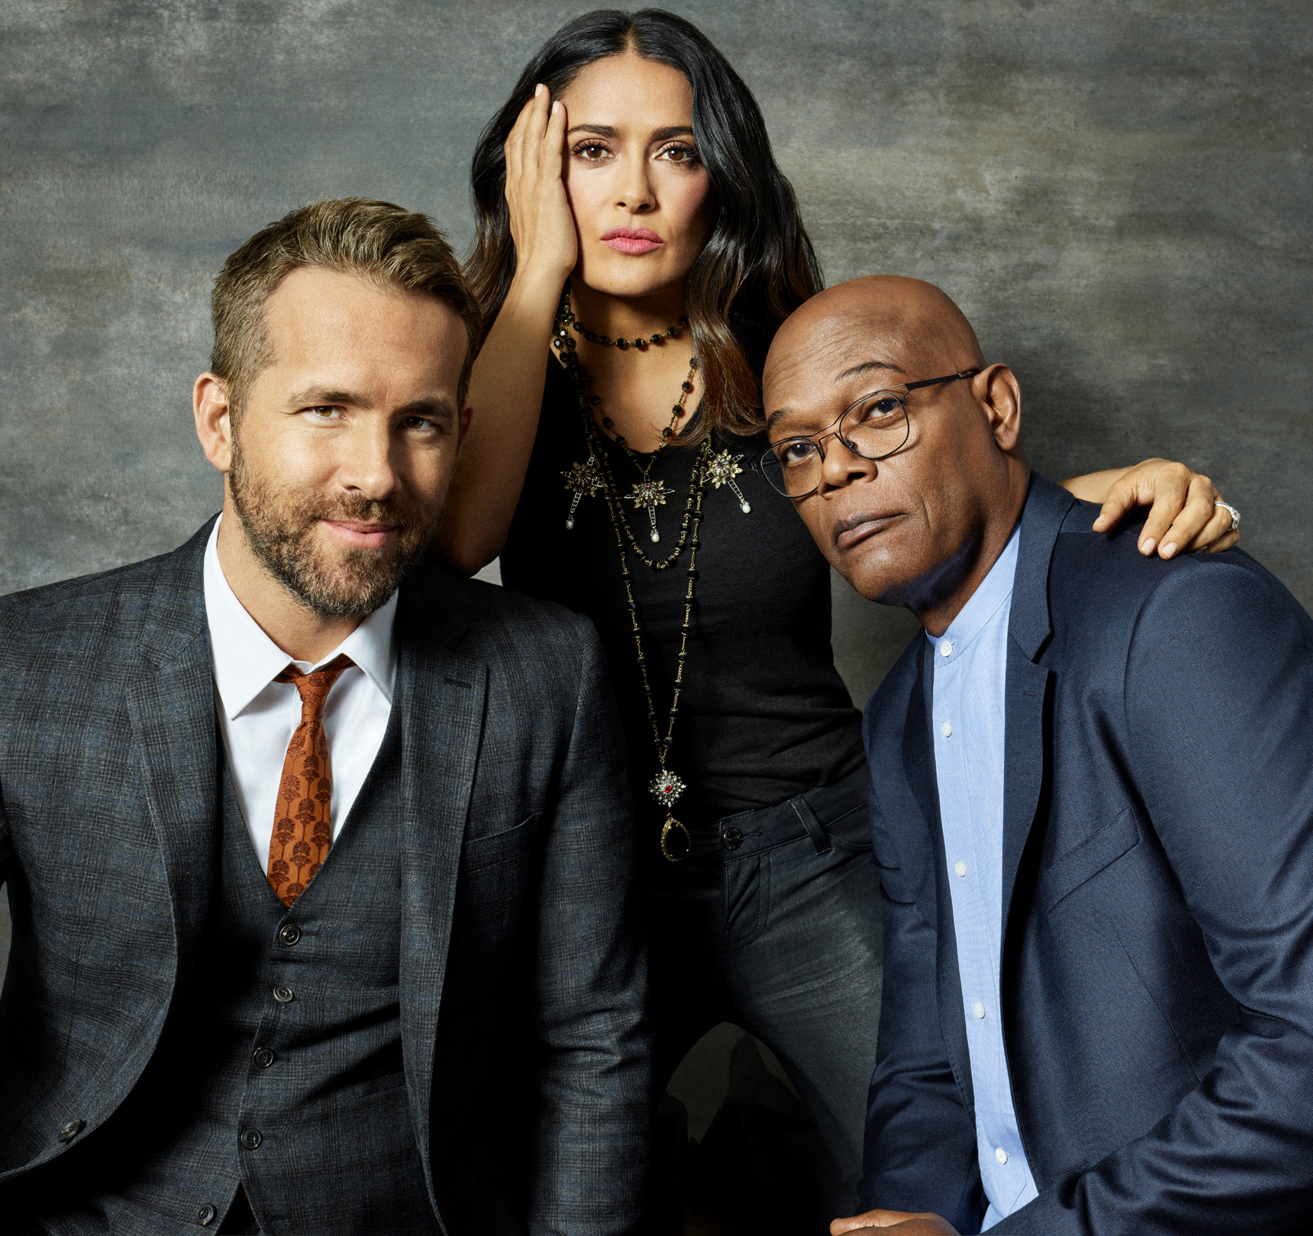 Celebrity Photographer Michael Schwartz: Ryan Reynolds, Salma Hayek, Samuel Jackson for Lionsgate Hitman